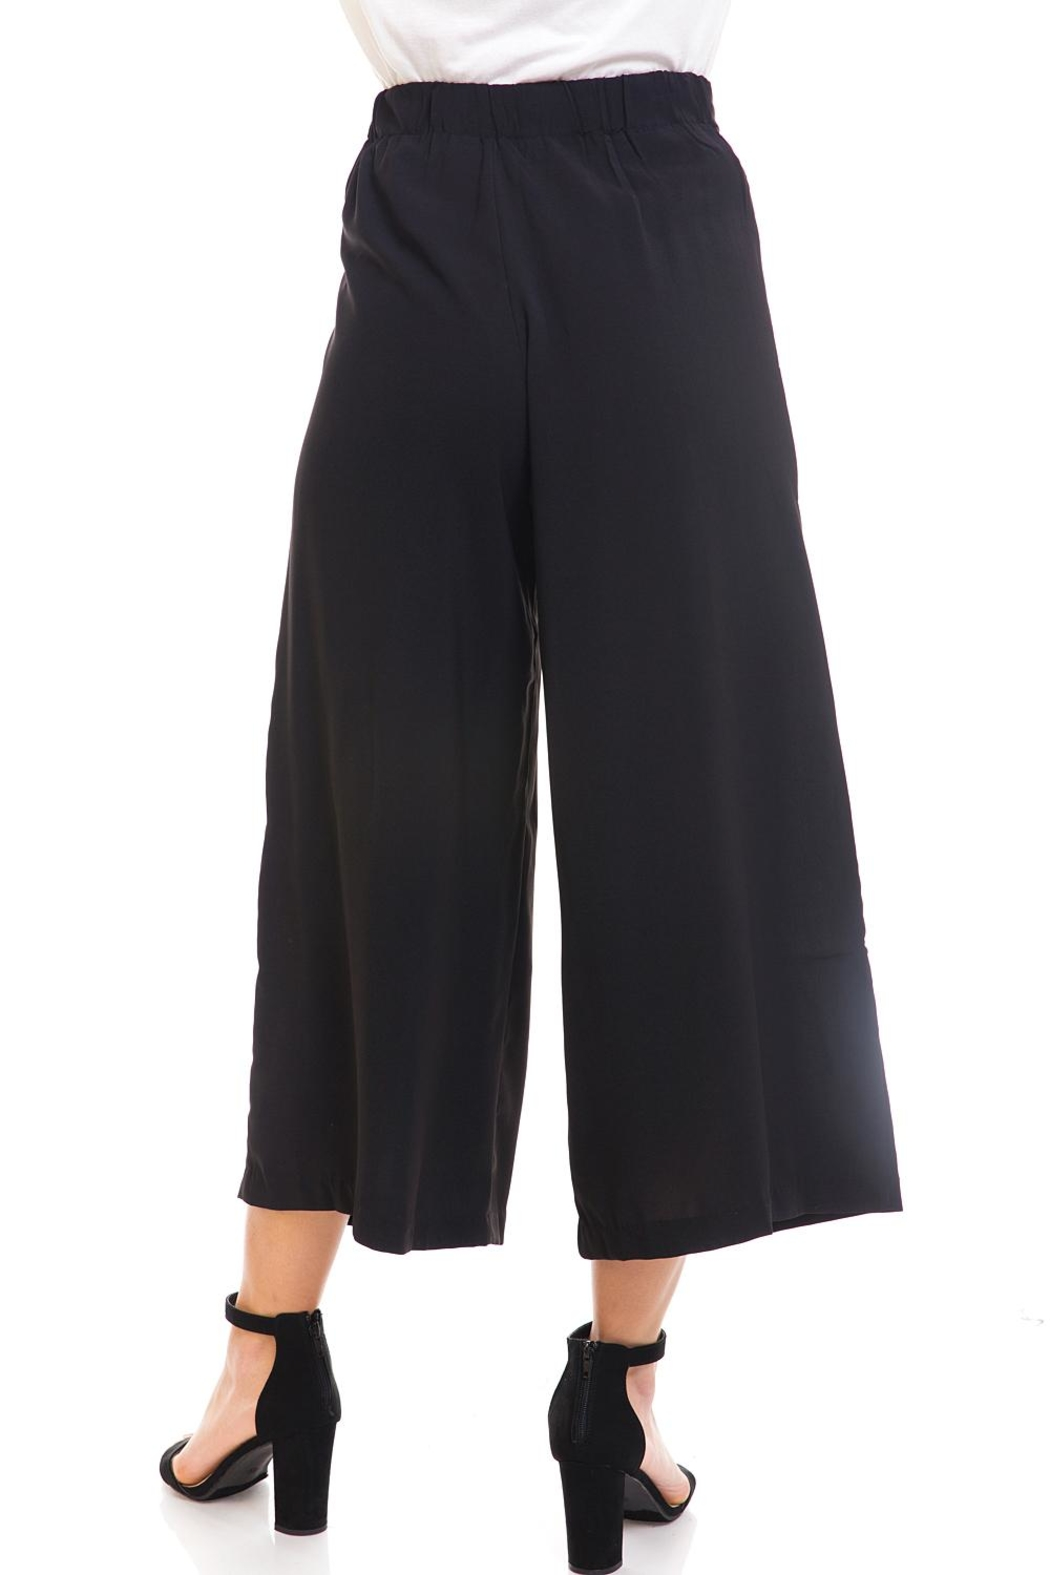 Do & Be Tie-Front Cropped Pants - Back Cropped Image